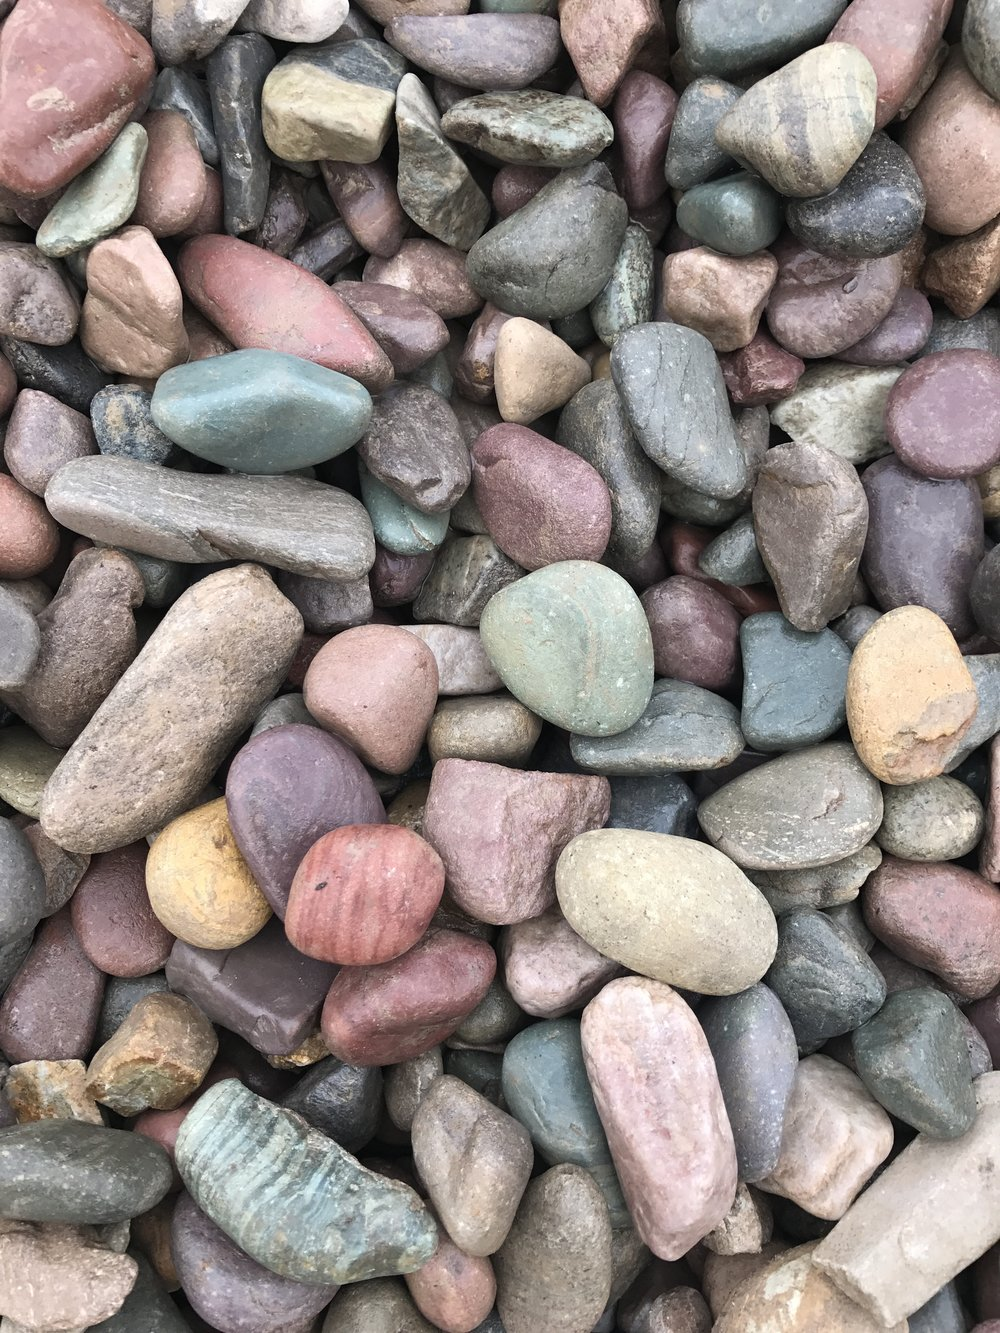 Our natural rainbow river rock is well-known for it's beautiful multi-colored reds, blues, purples, greens, and pinks. We sort rocks into various sizes so you can easily find the rock to suit your project. -